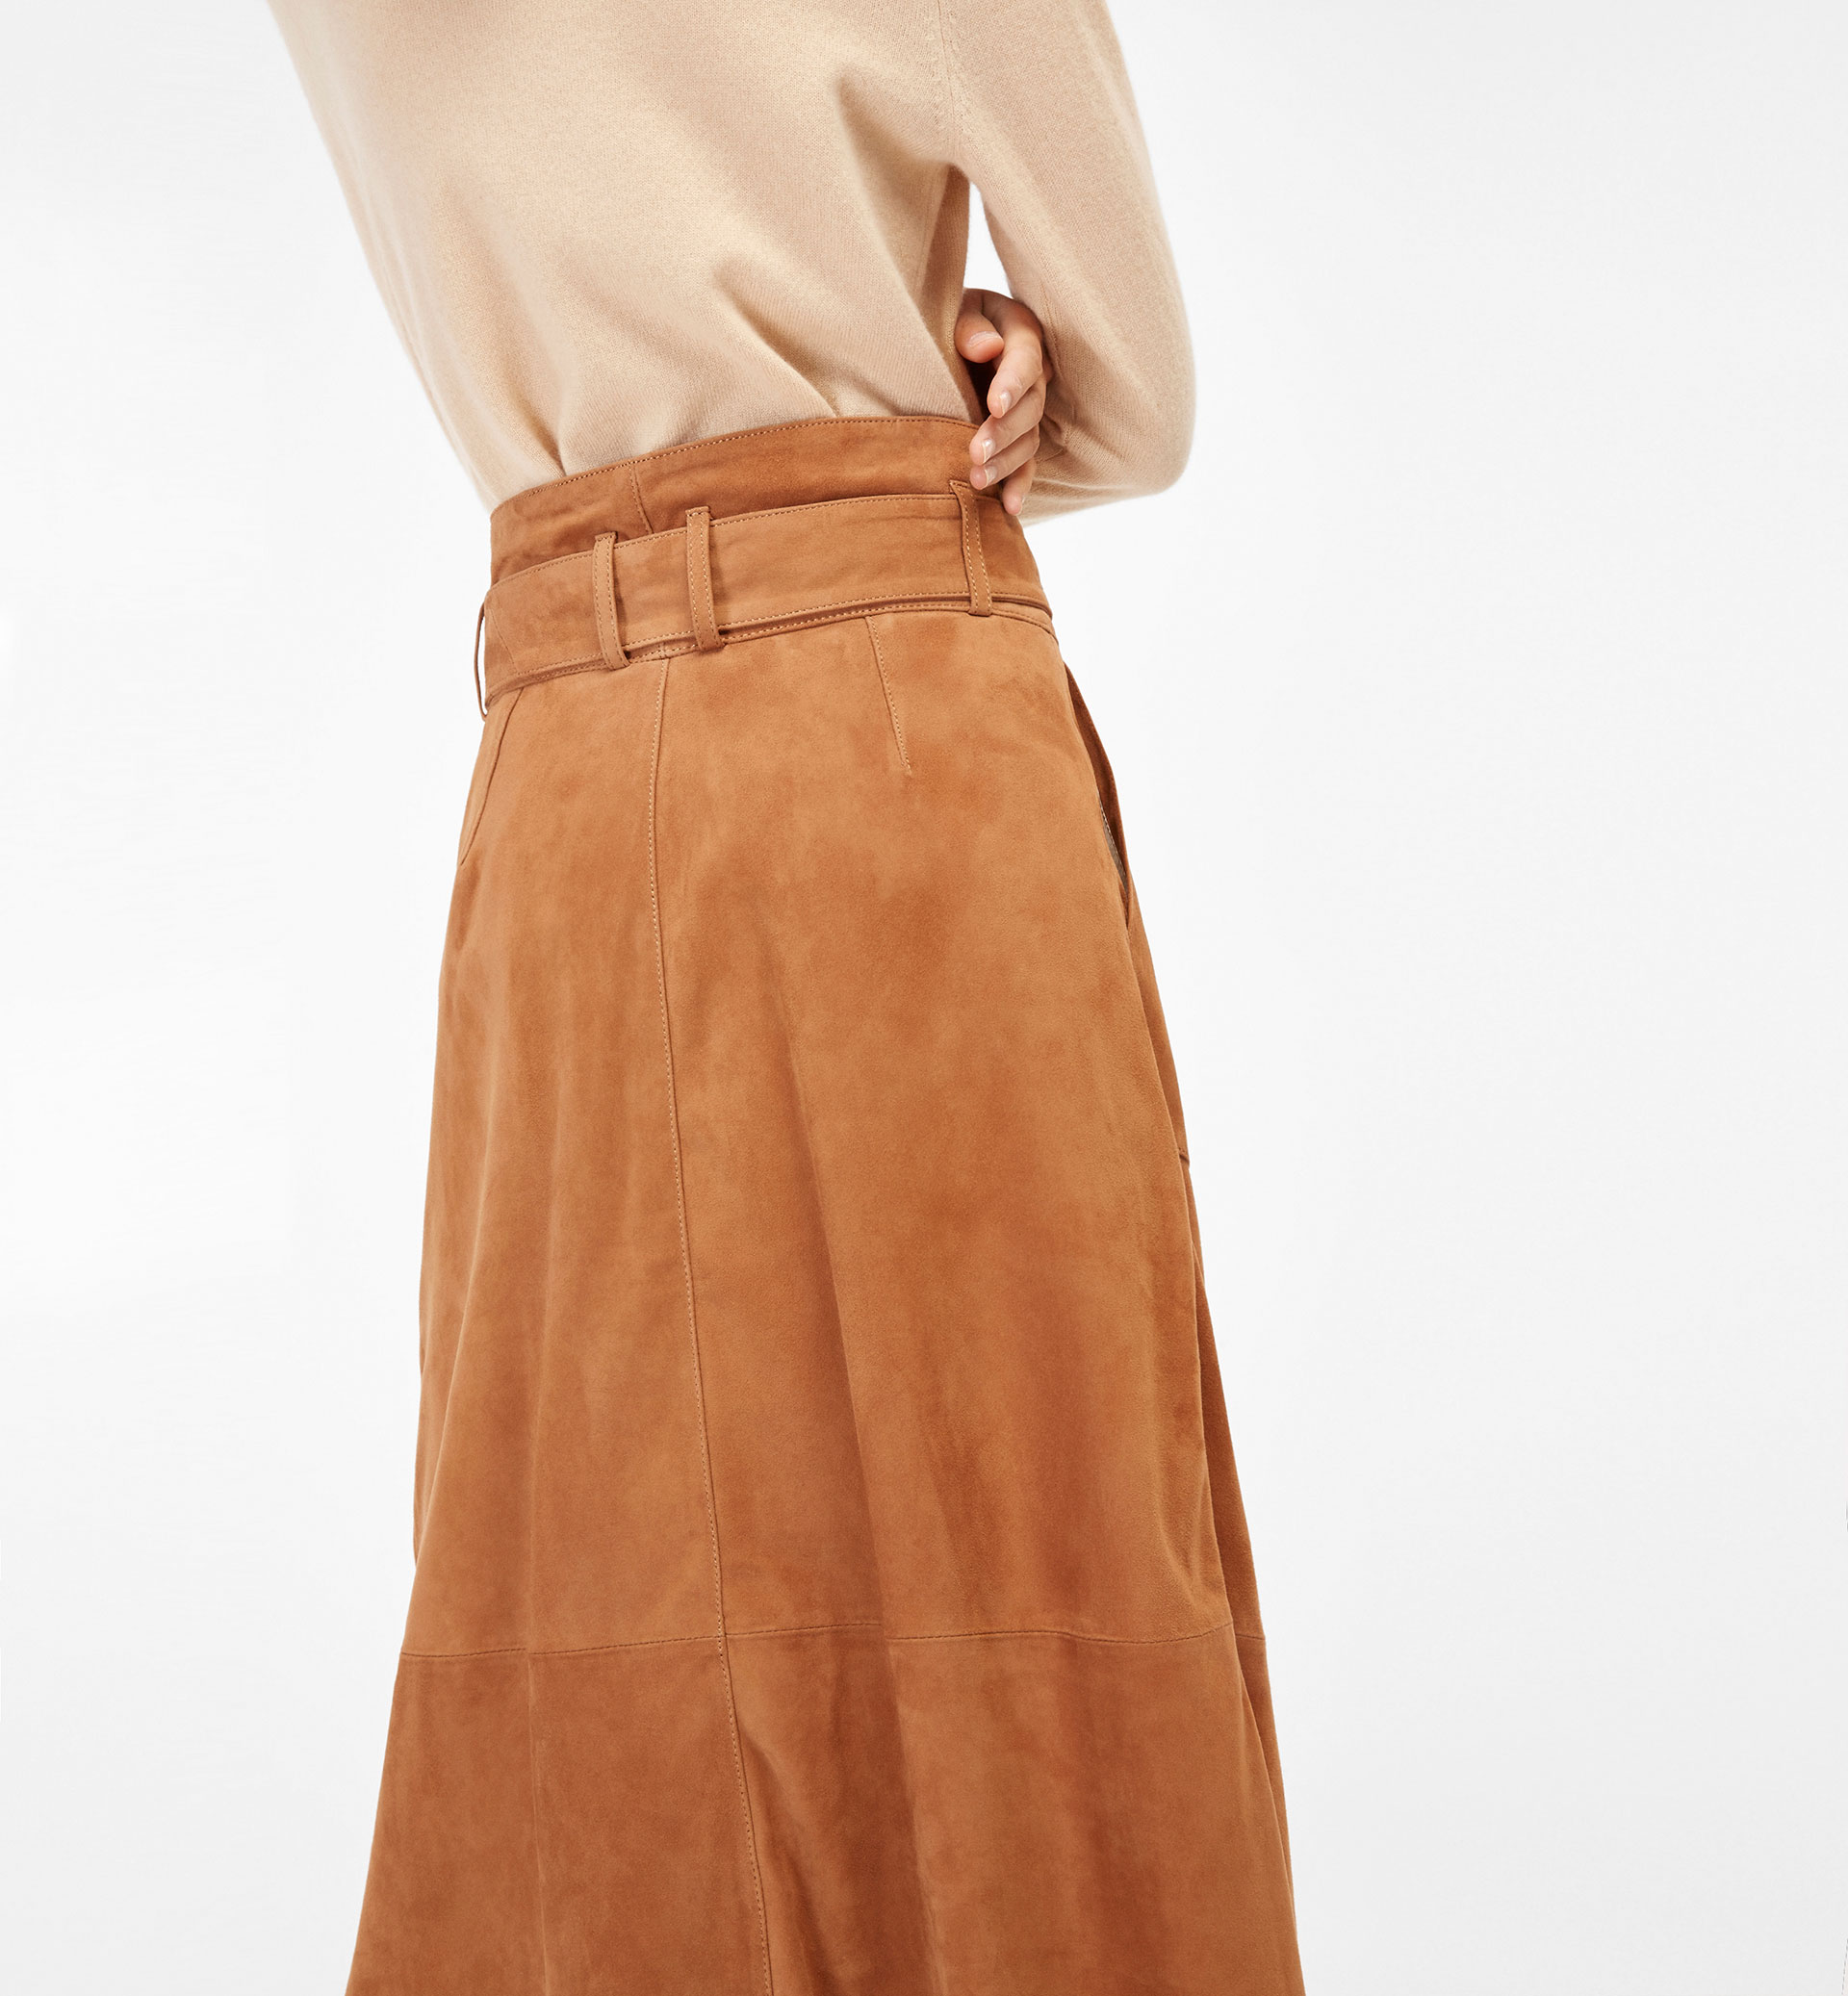 SUEDE SKIRT WITH BELT DETAIL